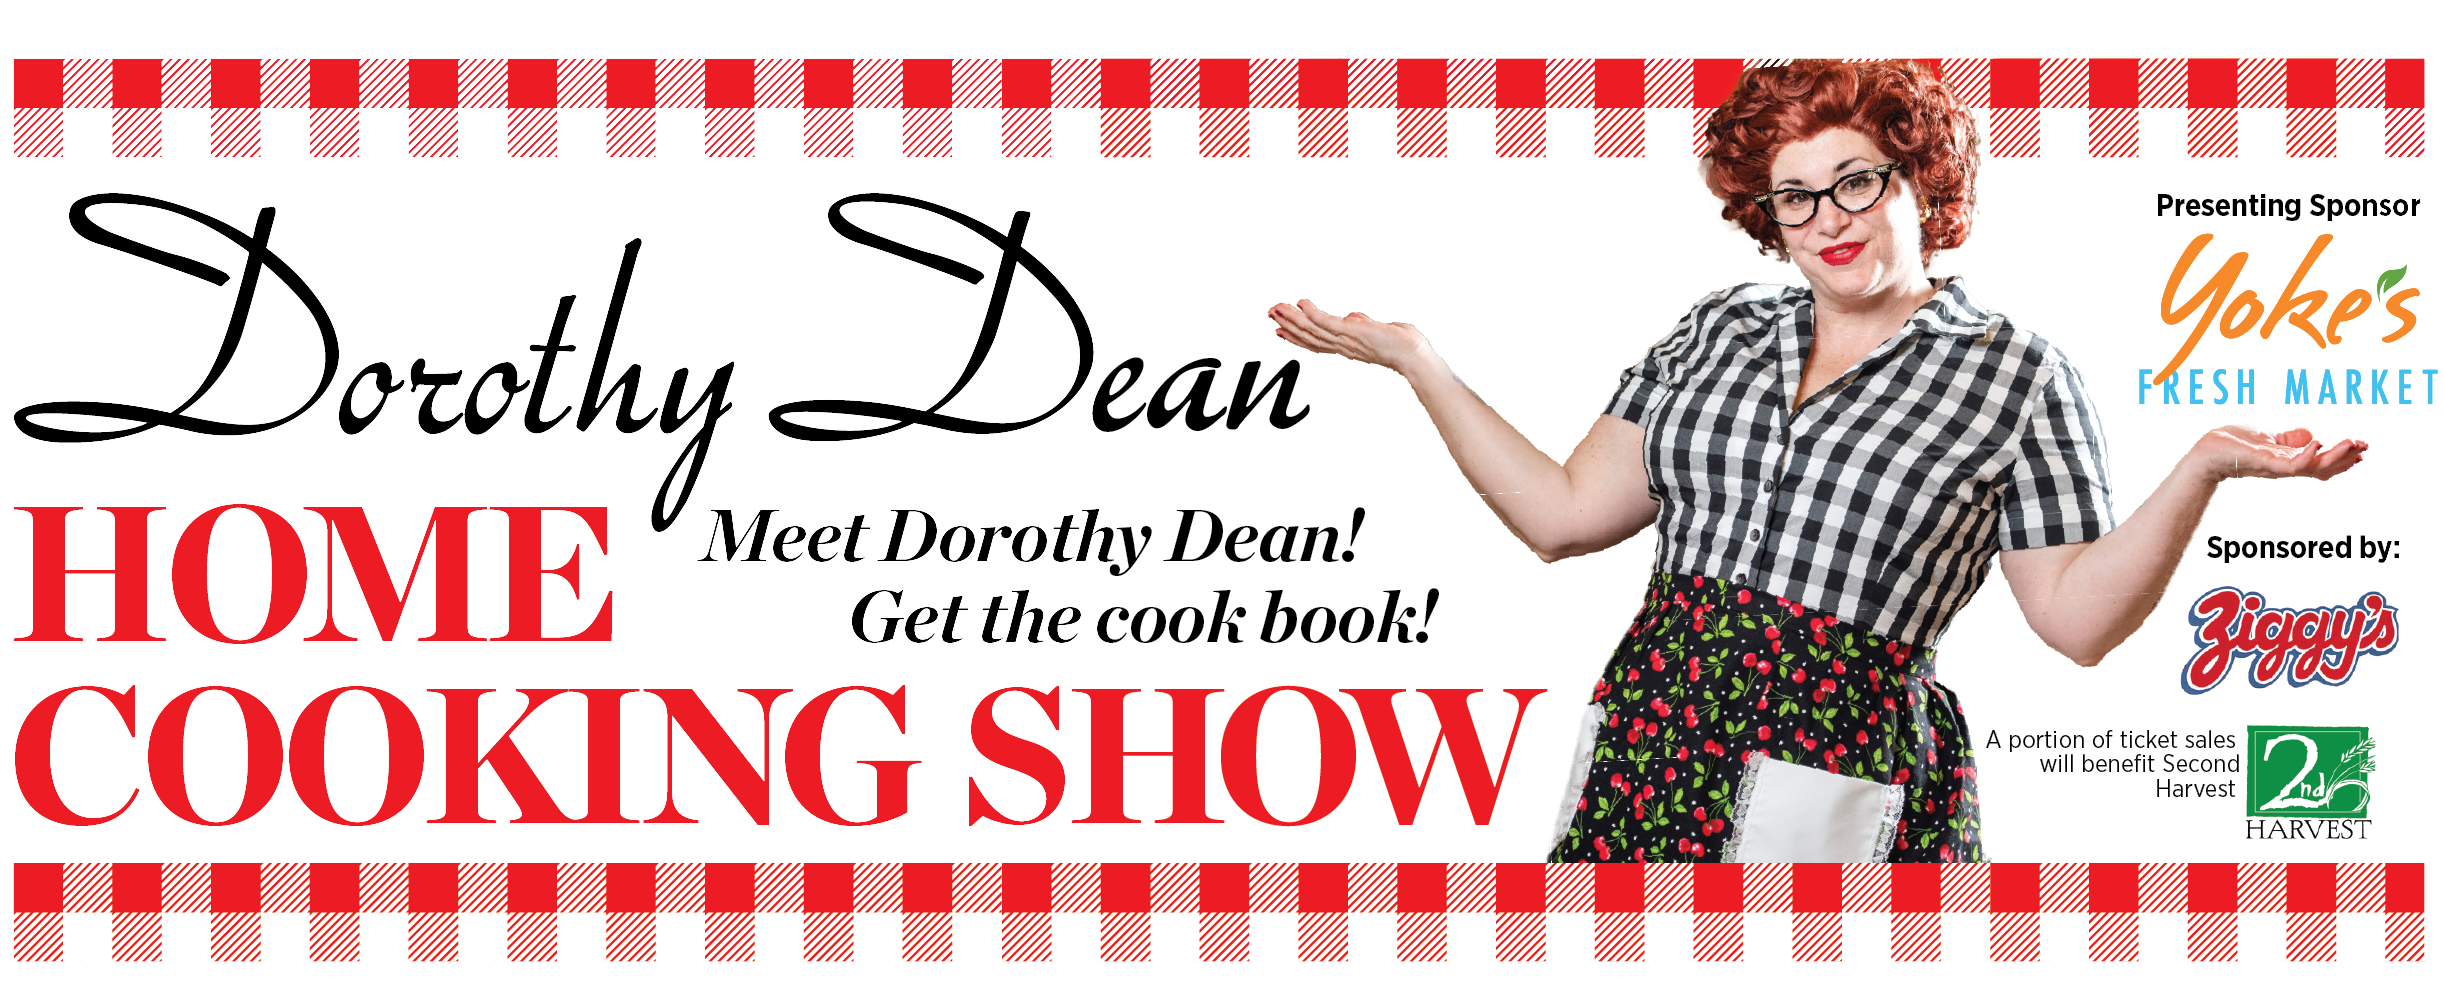 Dorothy Dean Home Cooking Show - A collection of content from The ...